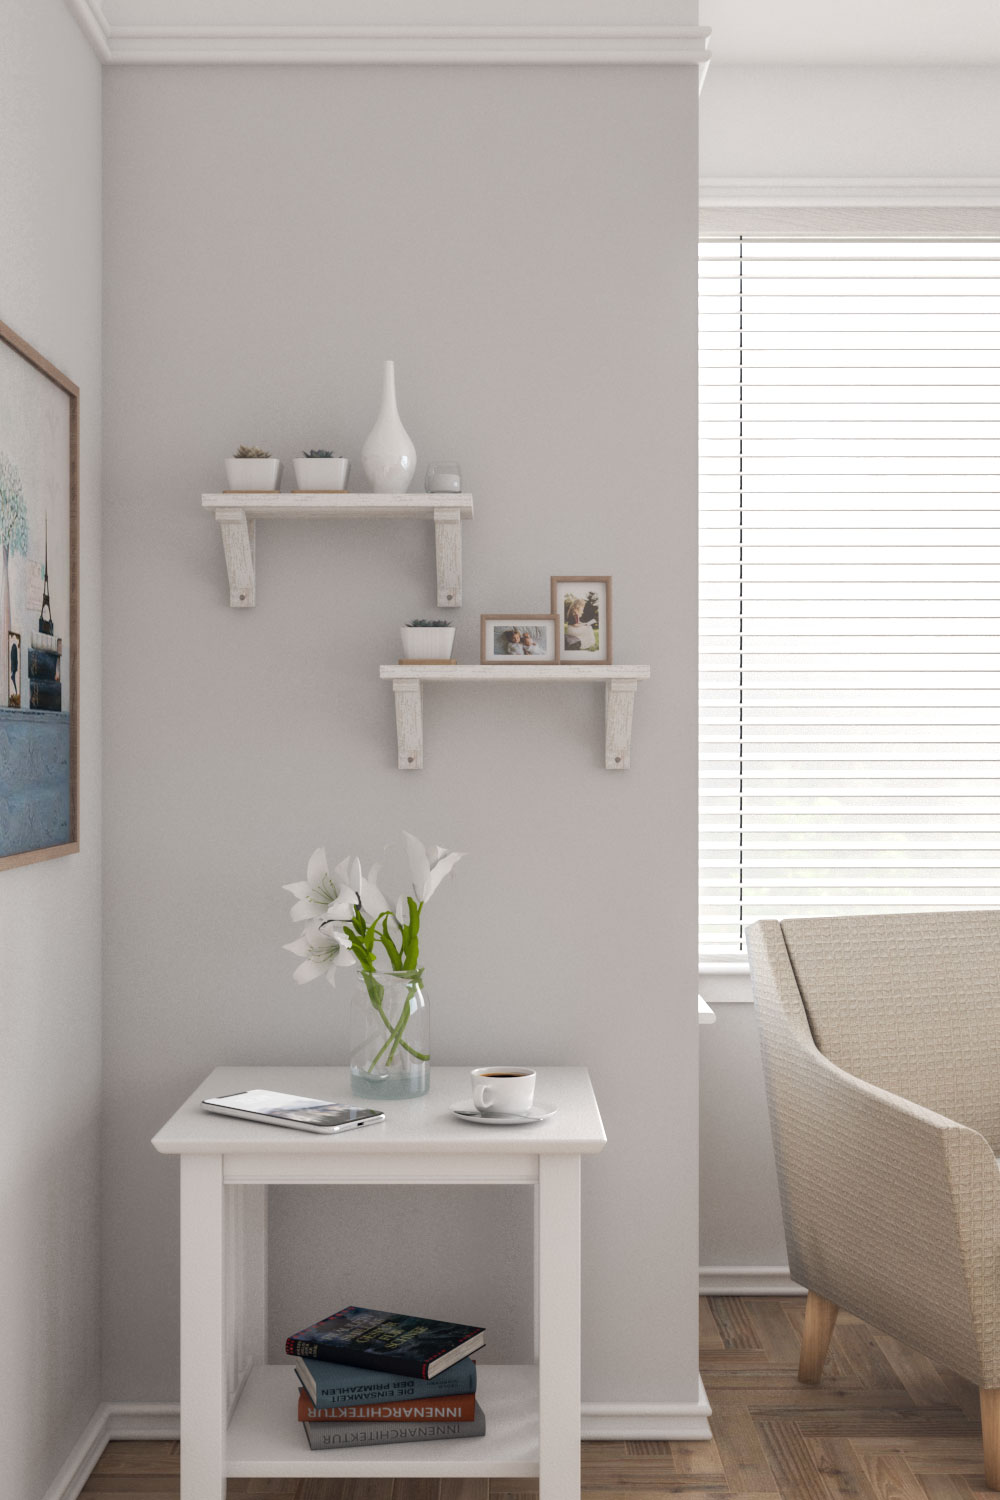 Decorative floating shelves with wooden brackets